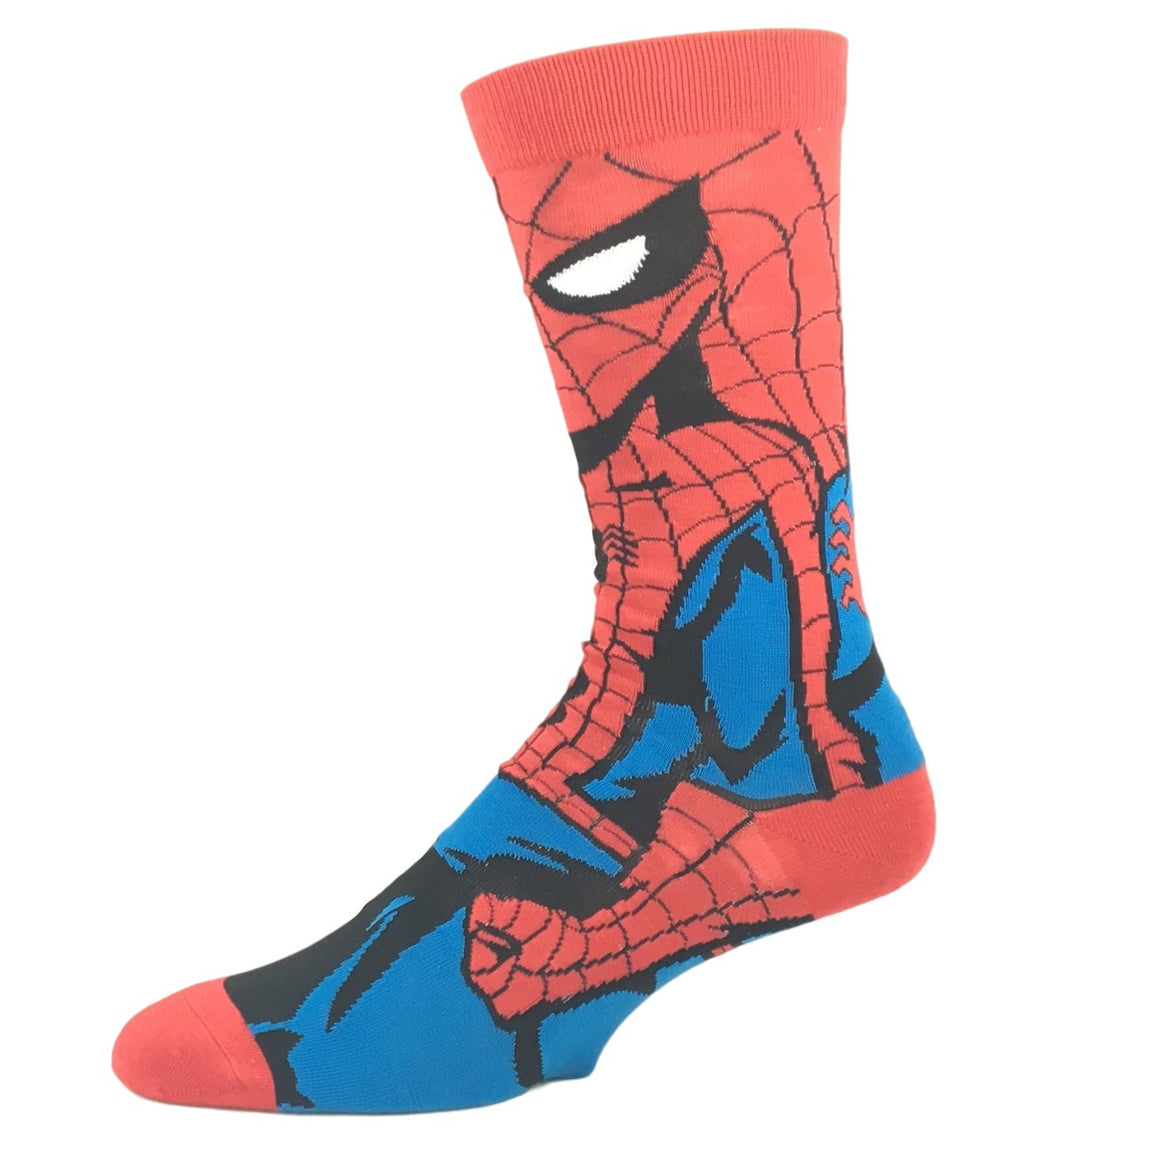 Socks - Marvel Spider-Man 360 Socks